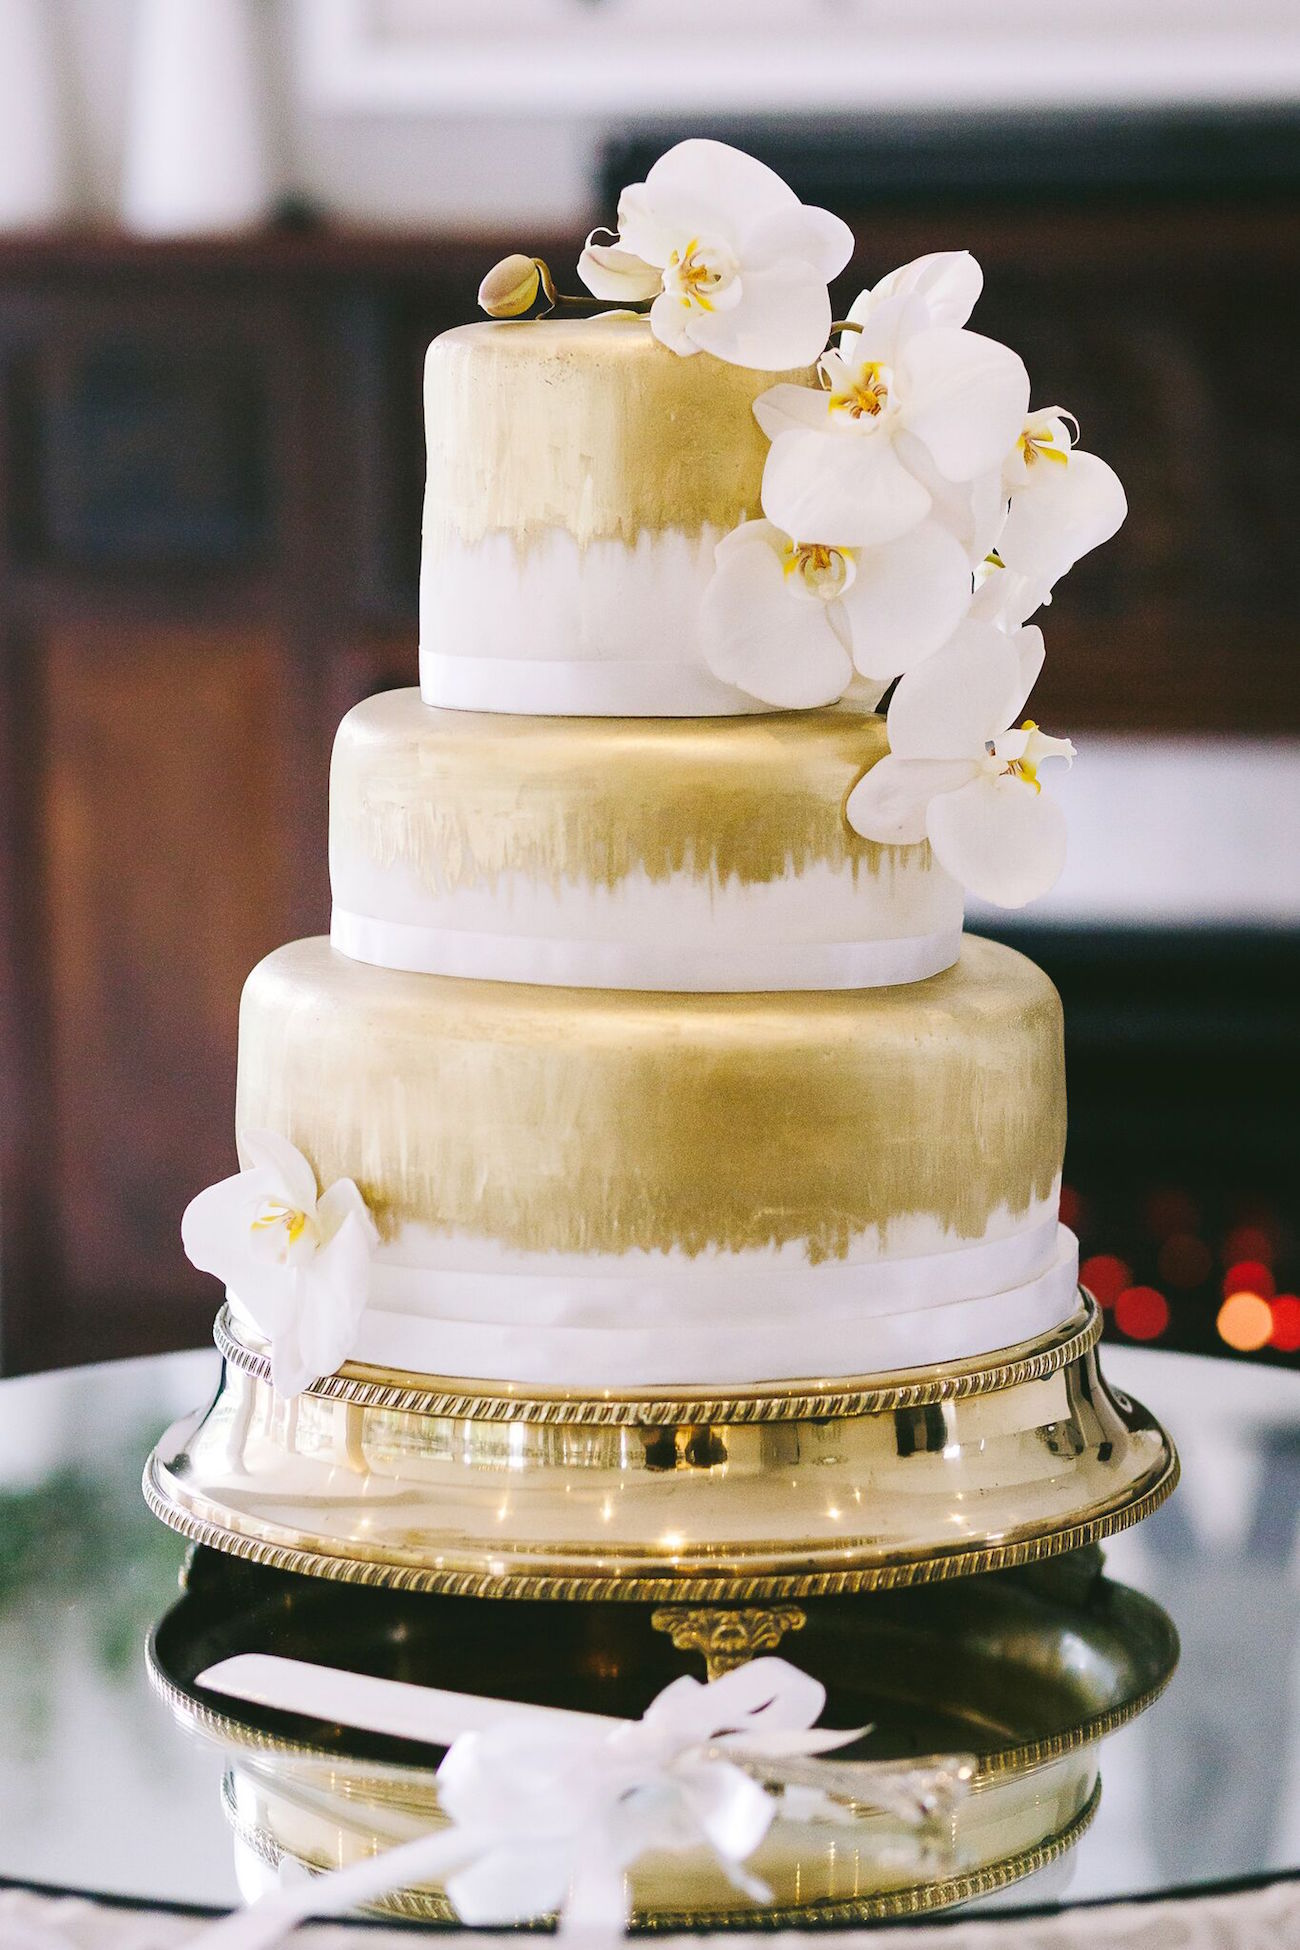 Gold Tiered Wedding Cake | Credit: Jani B & Bright and Beautiful